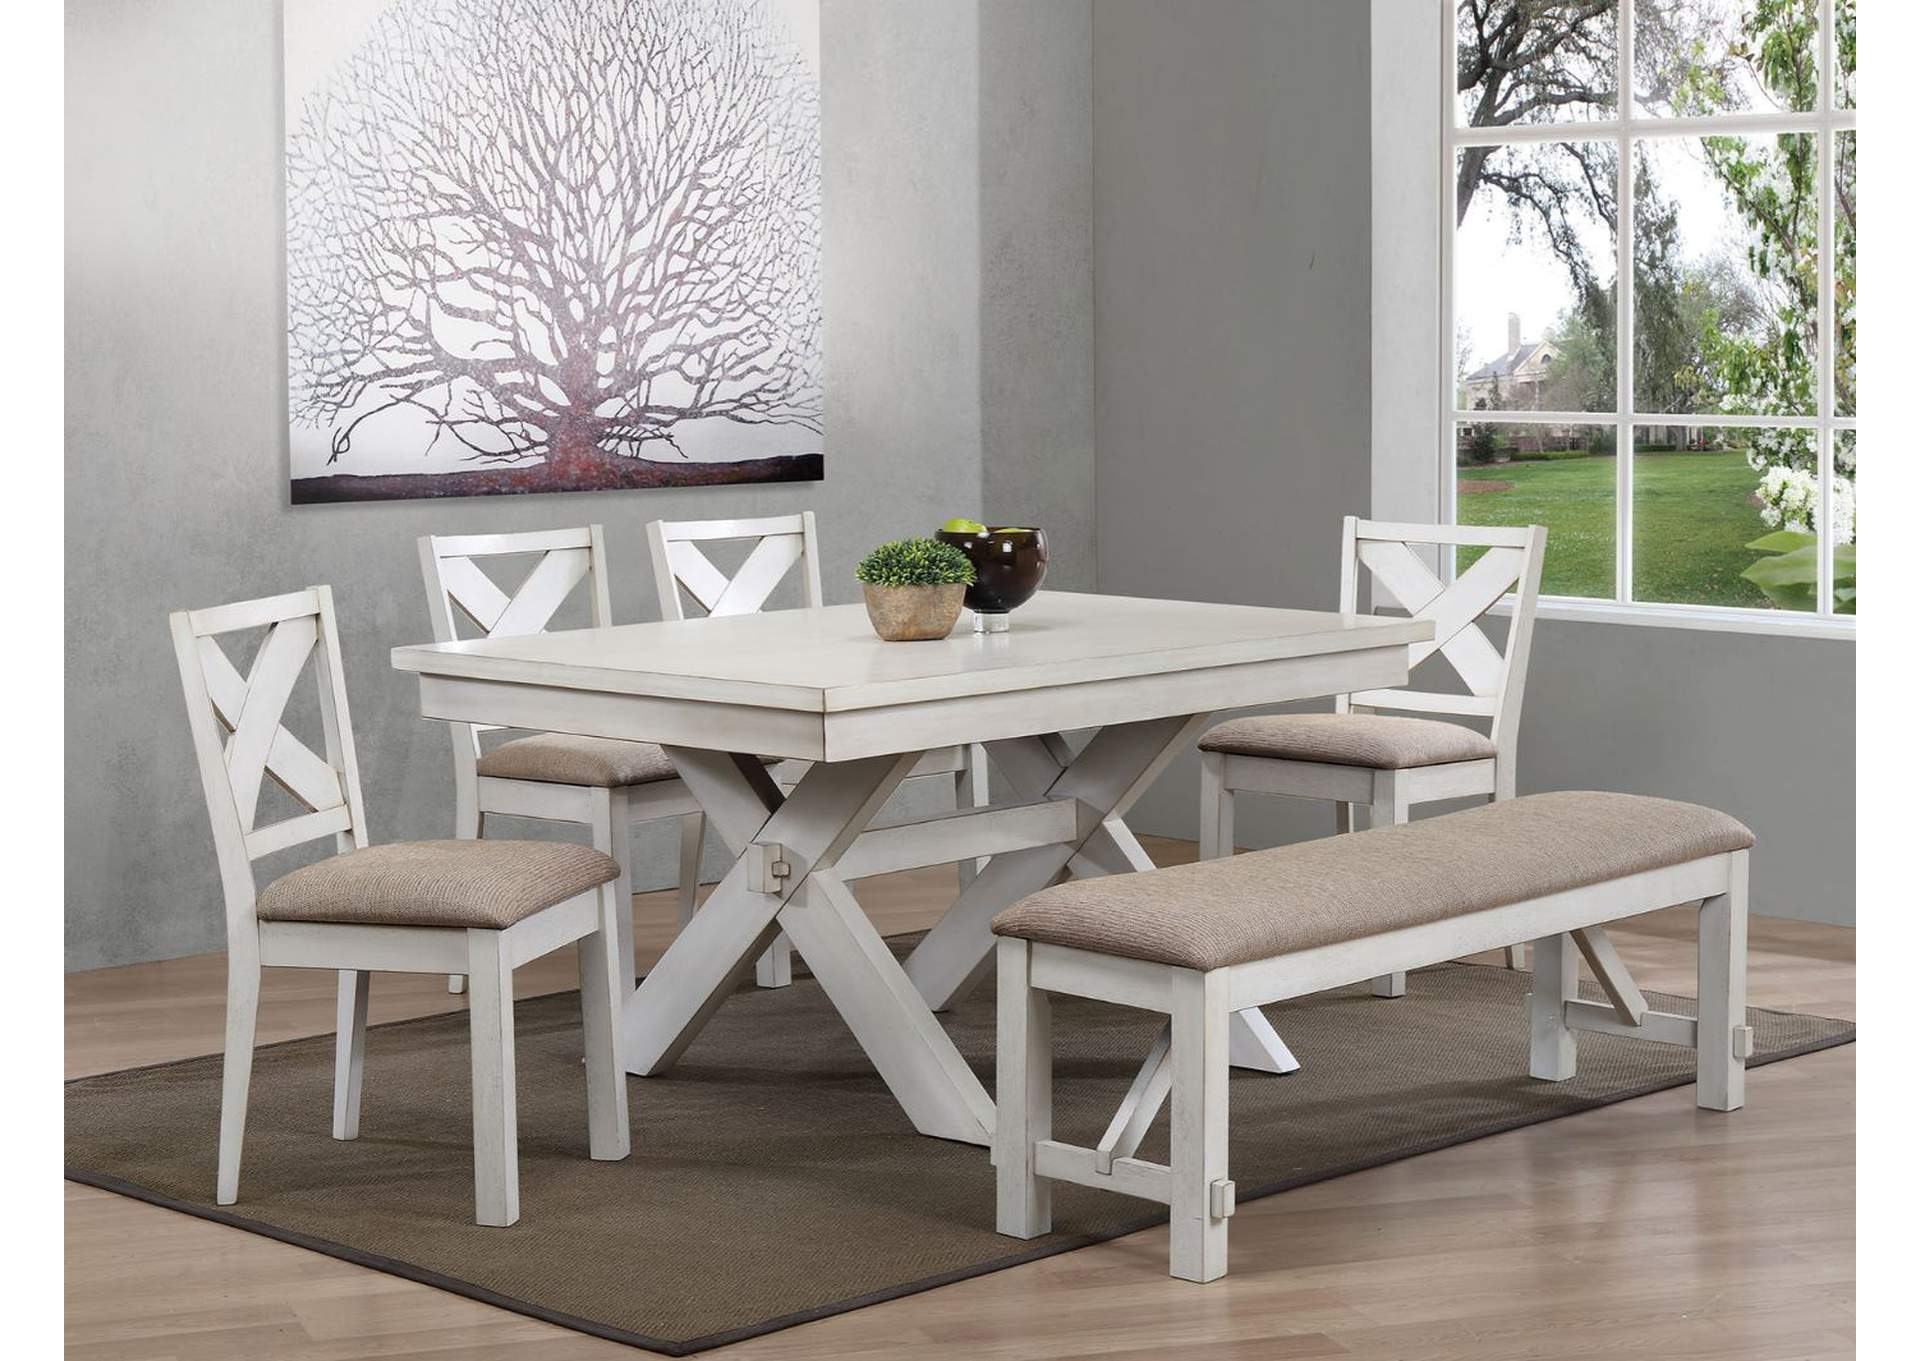 Antique White Dining Chairs Sweet Home Furniture By Niposul Apollo Antique White Dining Table